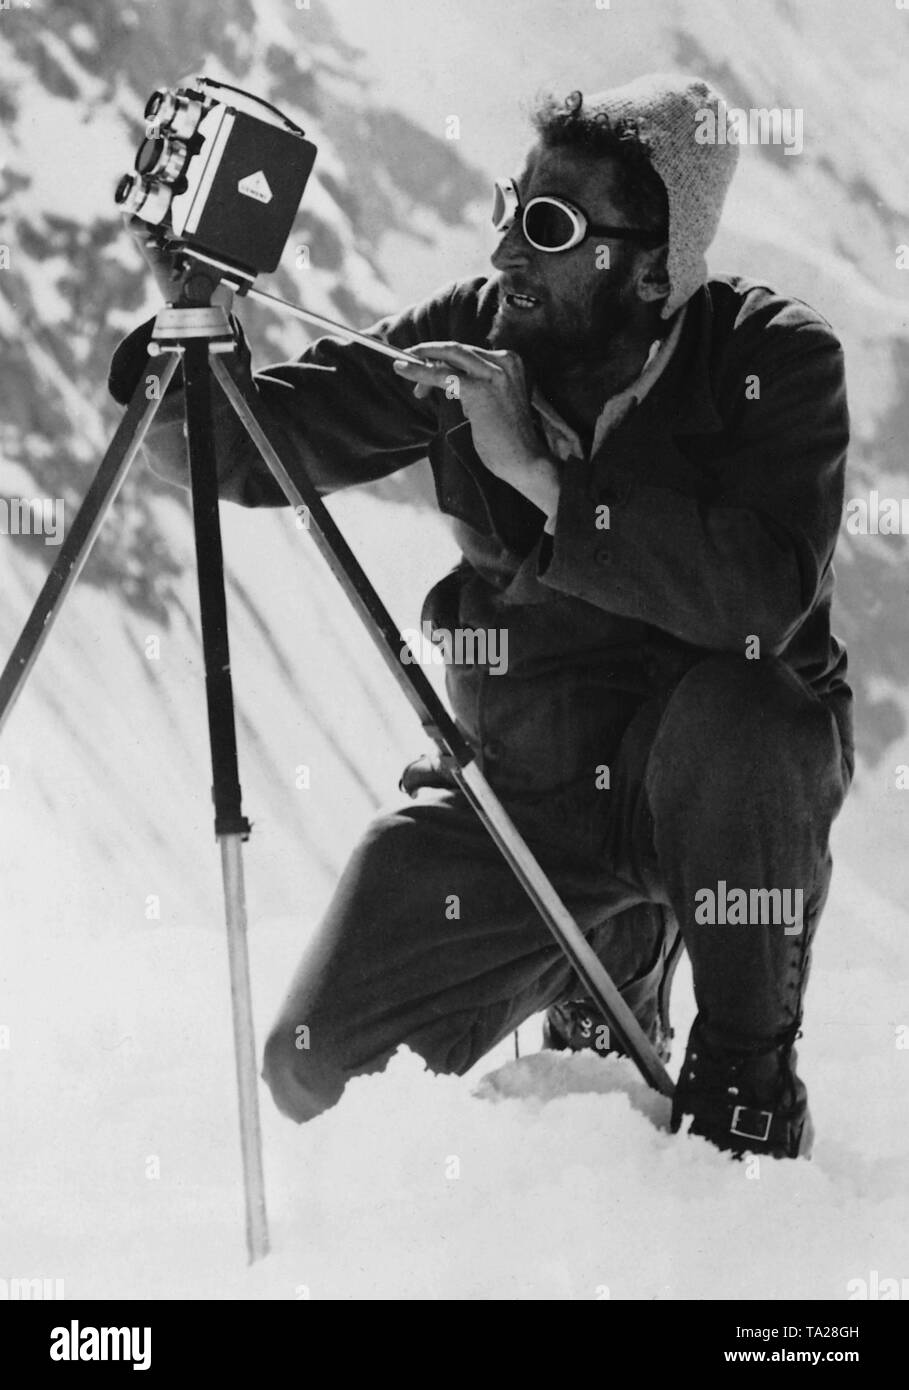 The engineer Bechtold films with a Siemens camera in the Himalayan region. - Stock Image